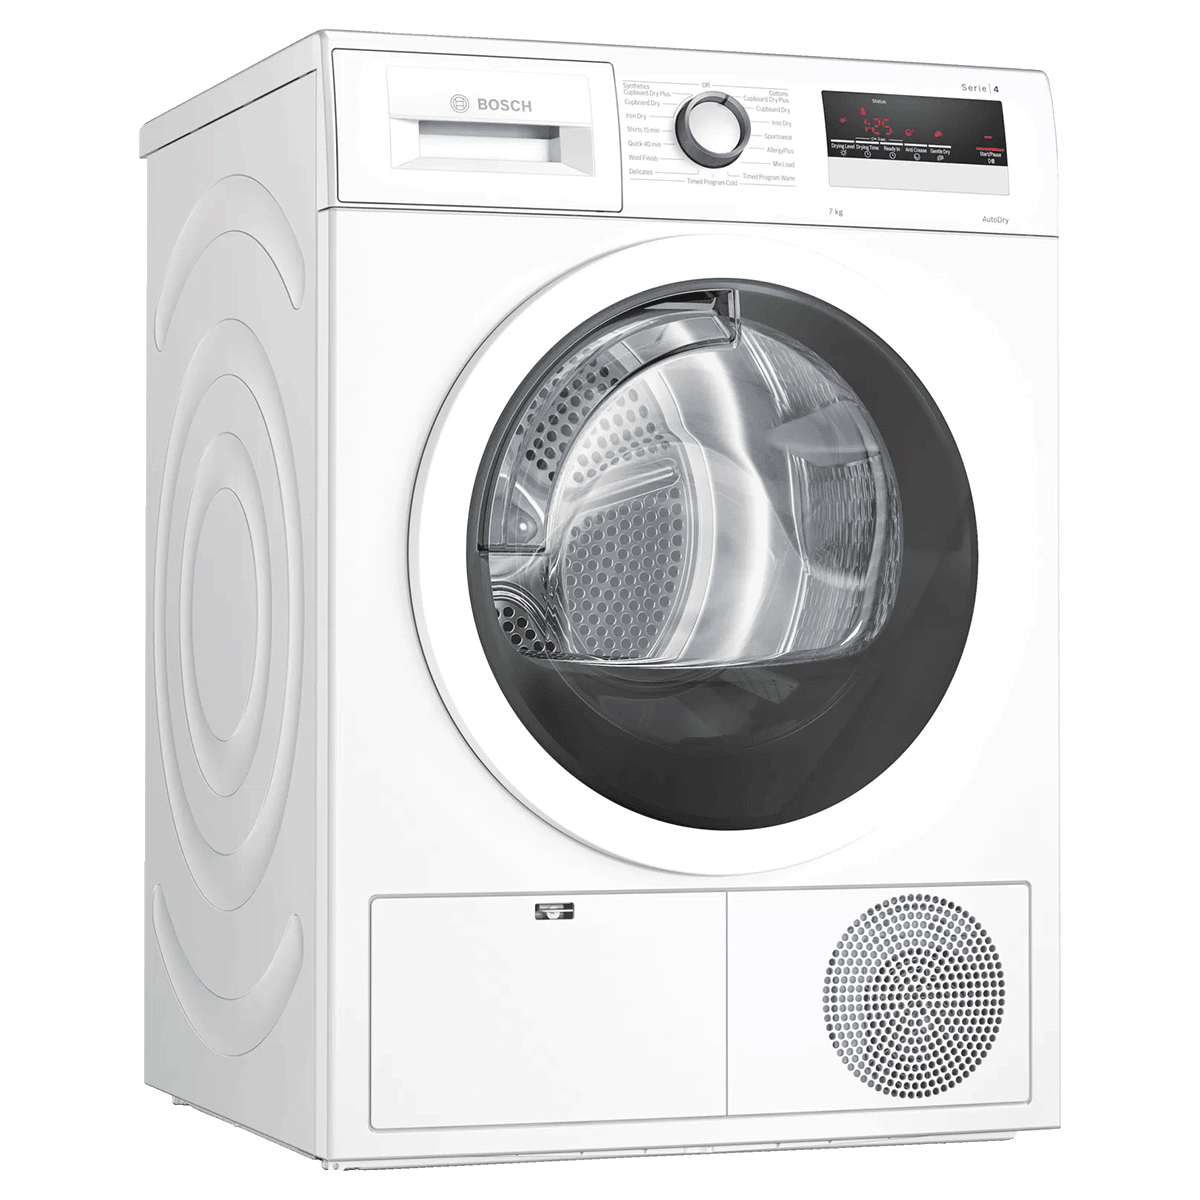 Bosch 7 kg Fully Automatic Front Loading Condenser Dryer (AllergyPlus Programme, WTN86203IN, White)